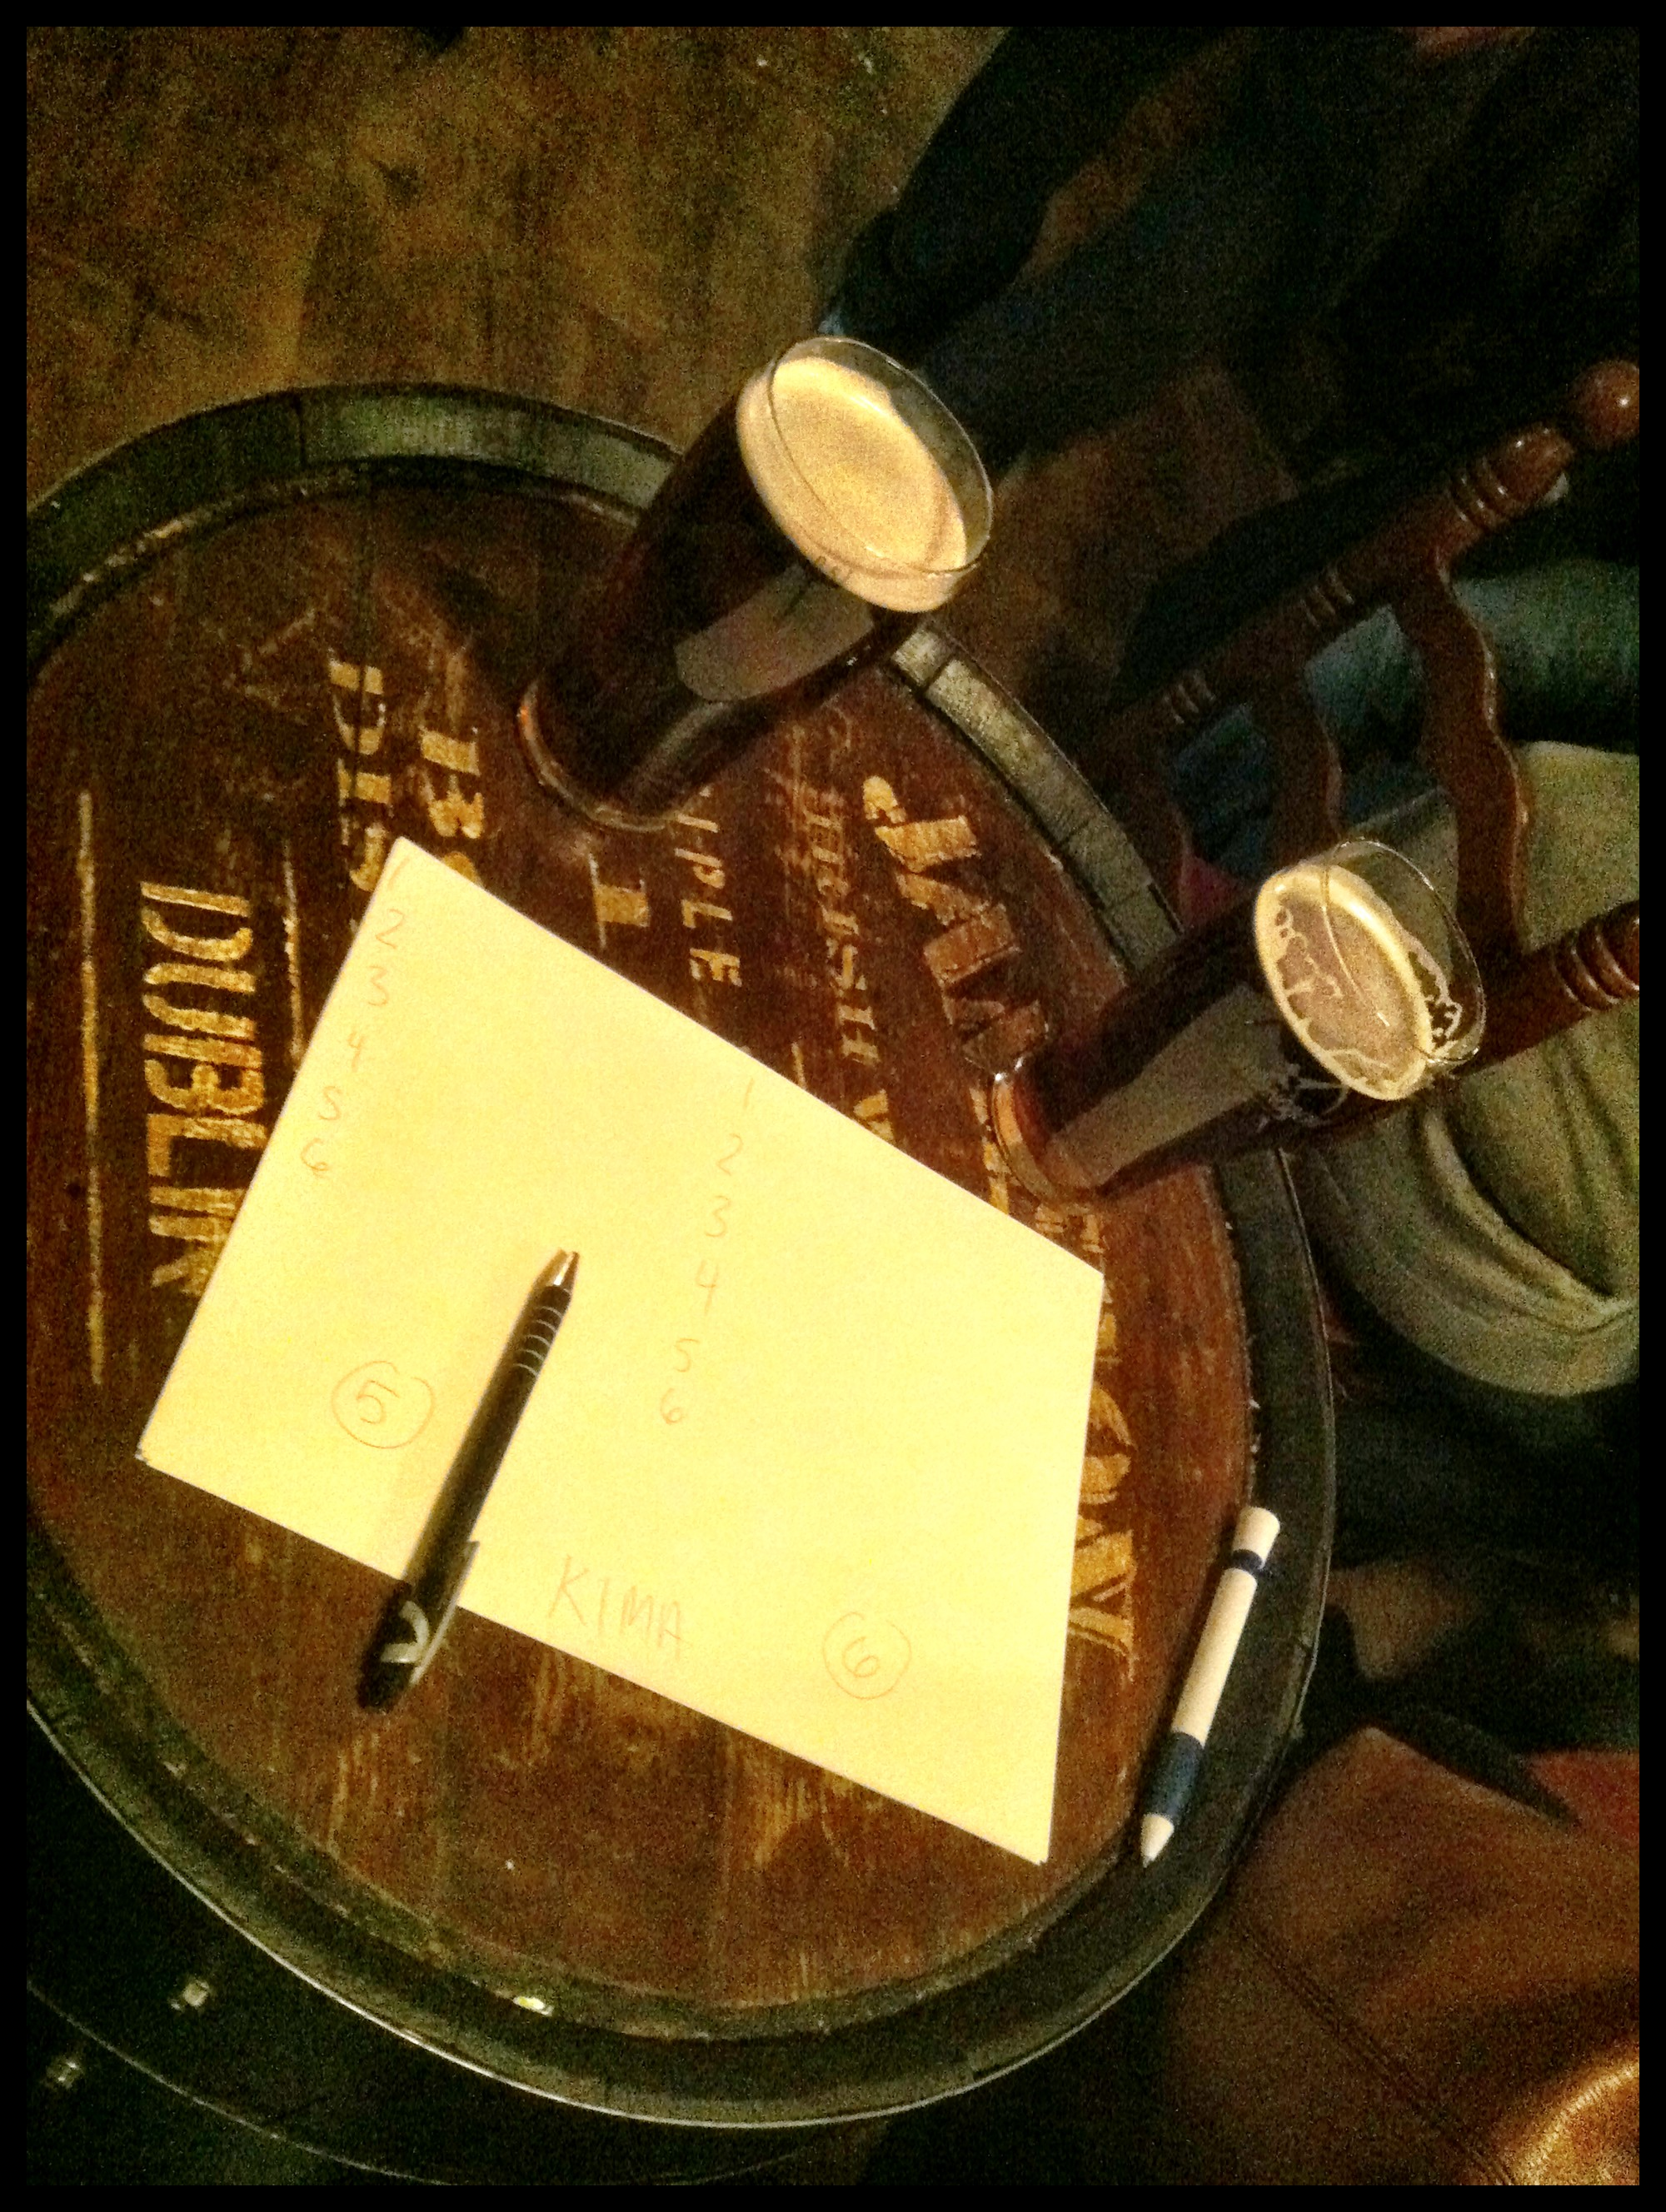 Two Pints, Two Pieces of Paper, a Barrel, and a Pen